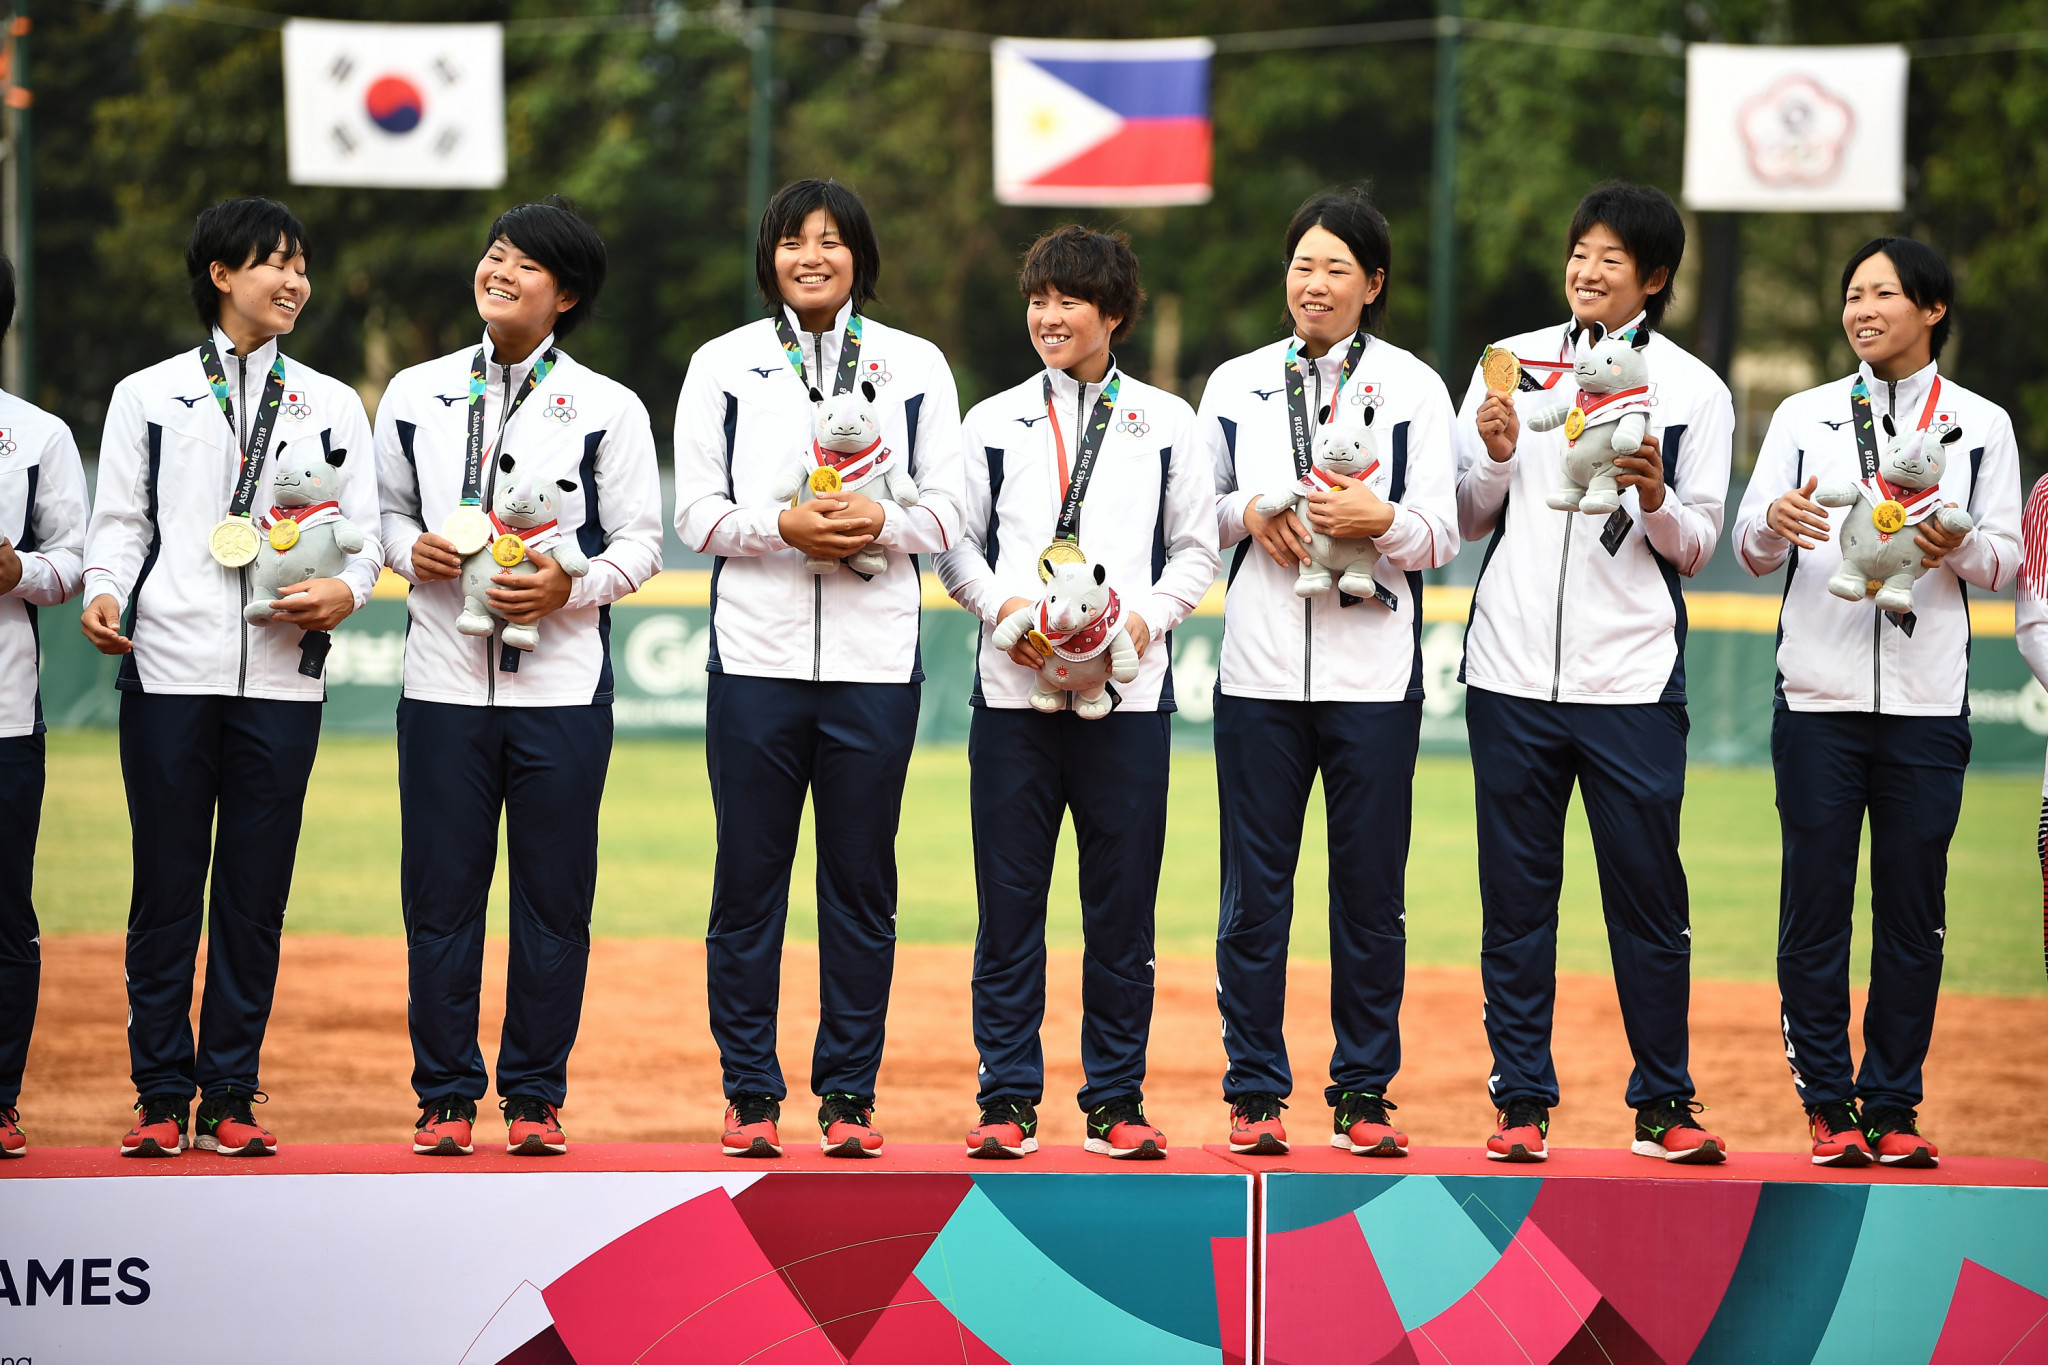 Japan claim fifth consecutive women's team softball title at Asian Games